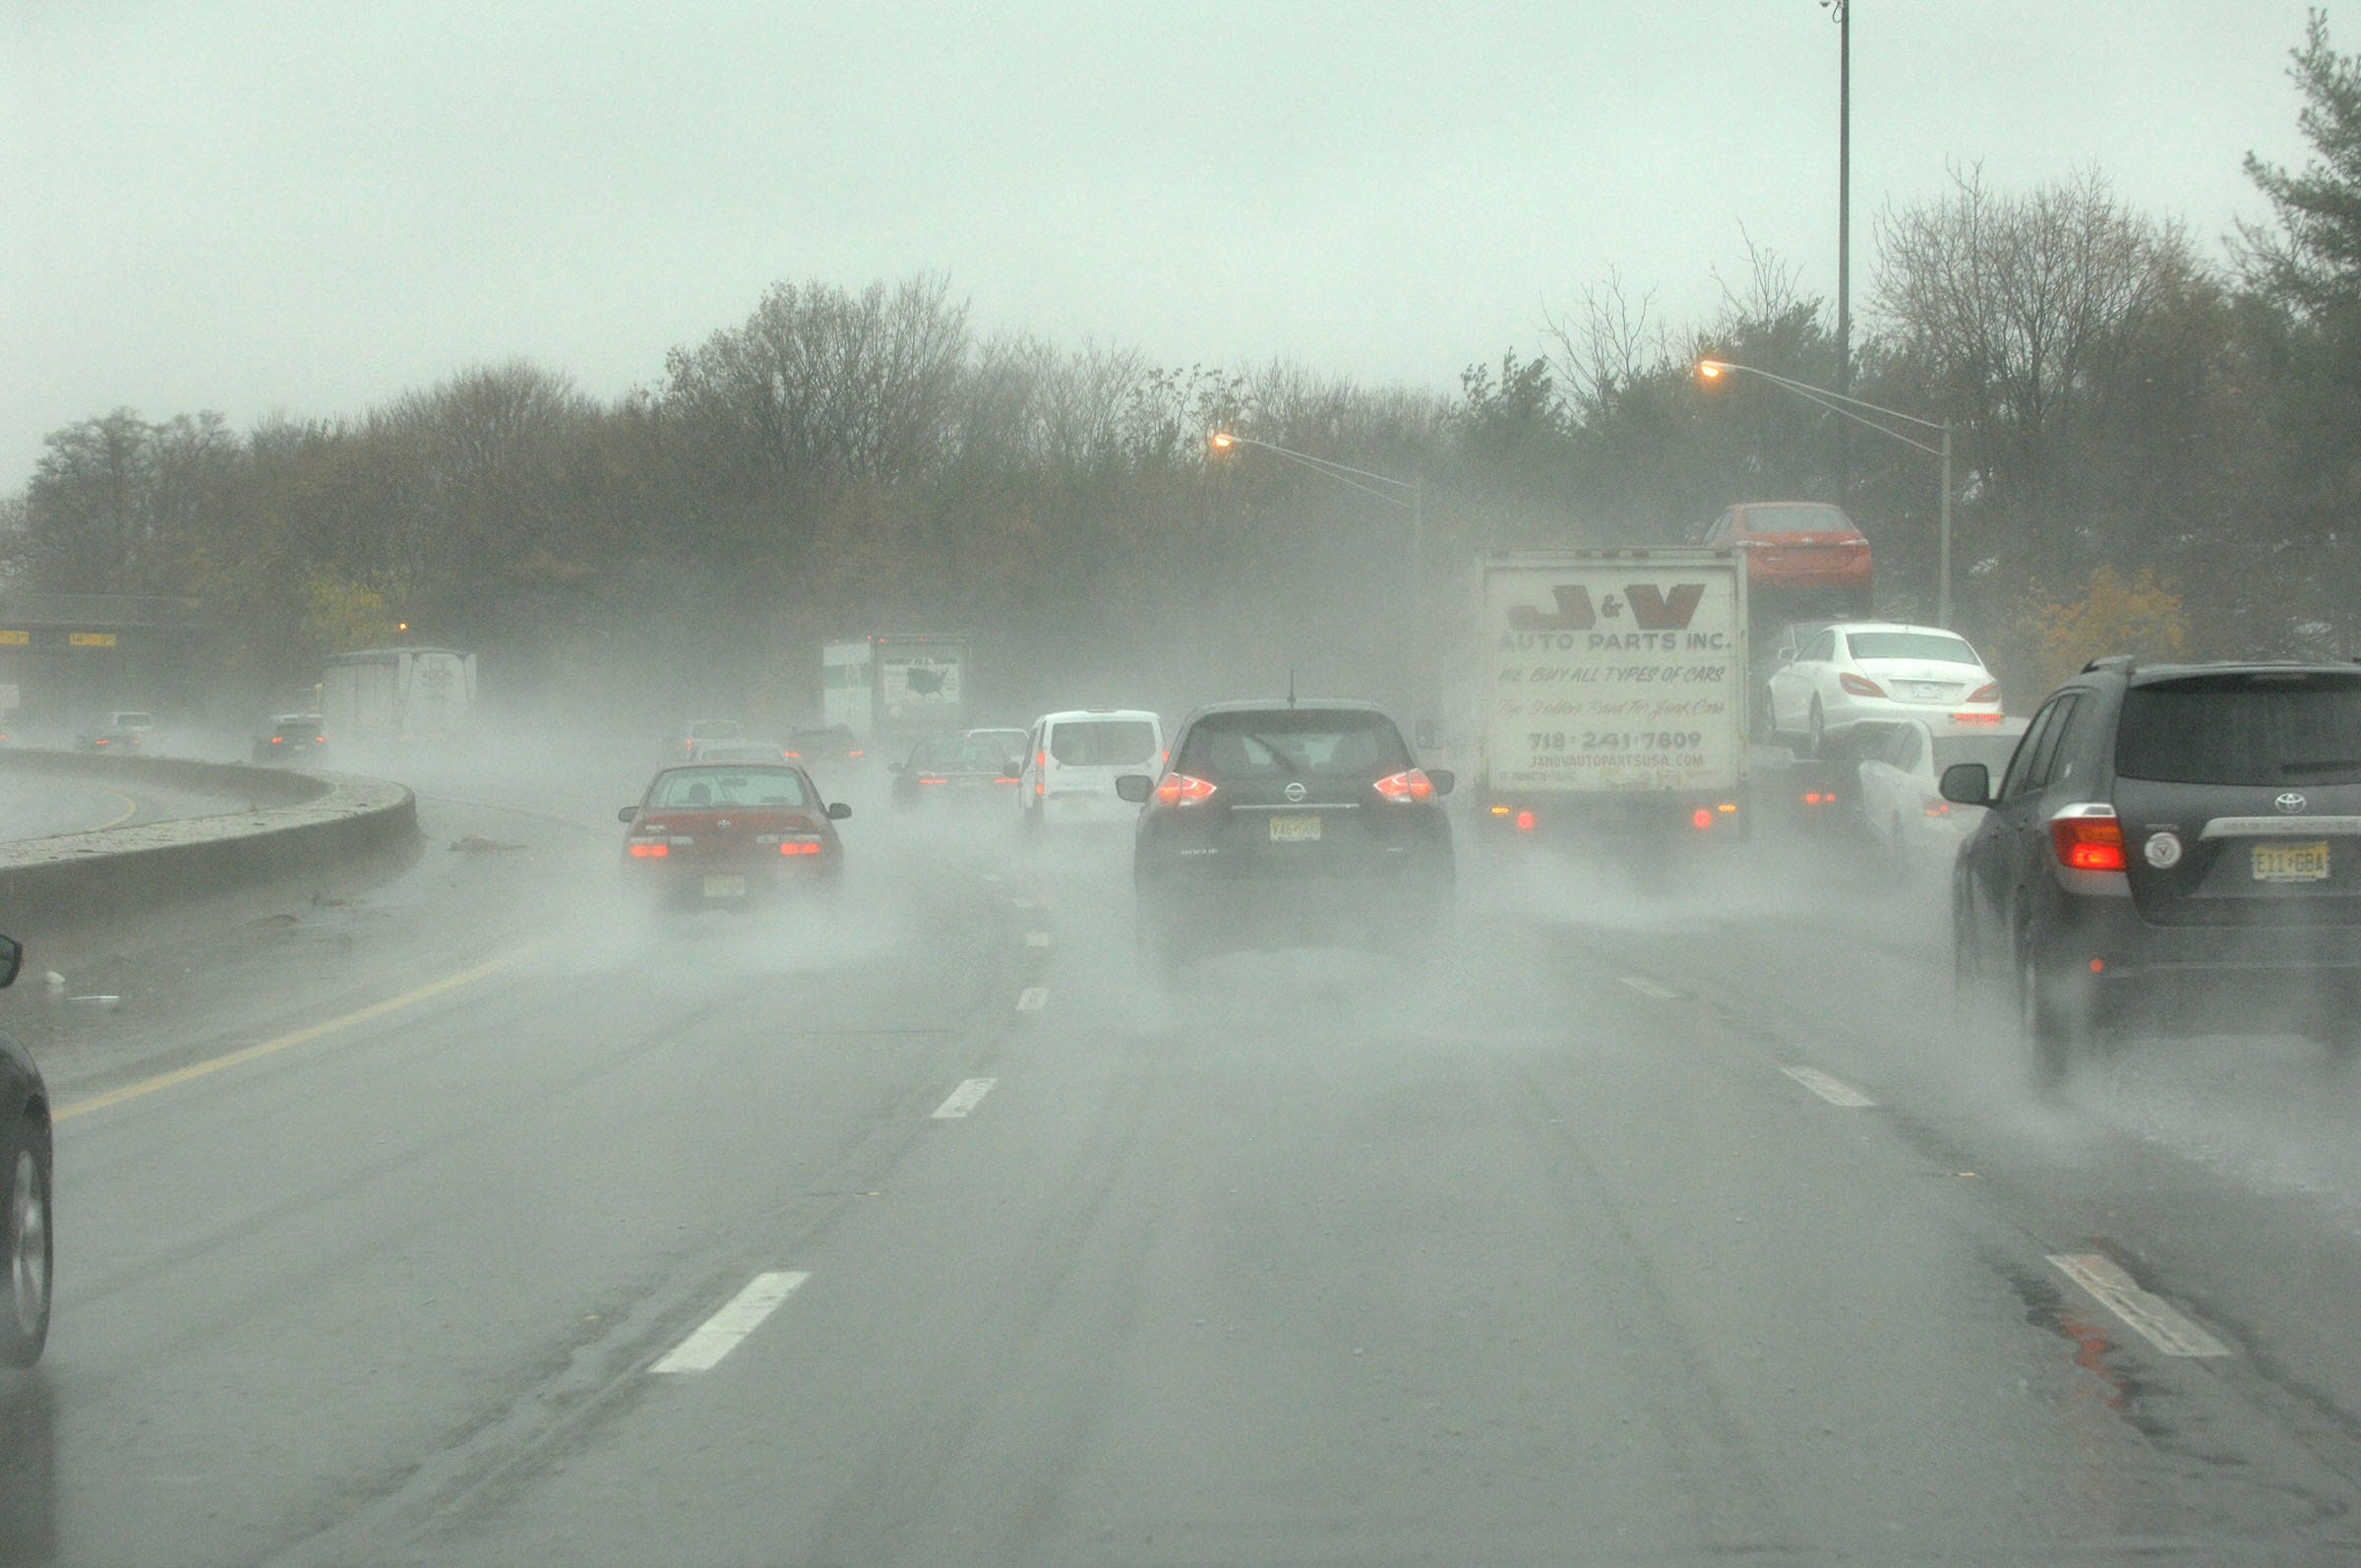 Mississippi one of the deadliest states for driving in the rain, report says | Clarion Ledger